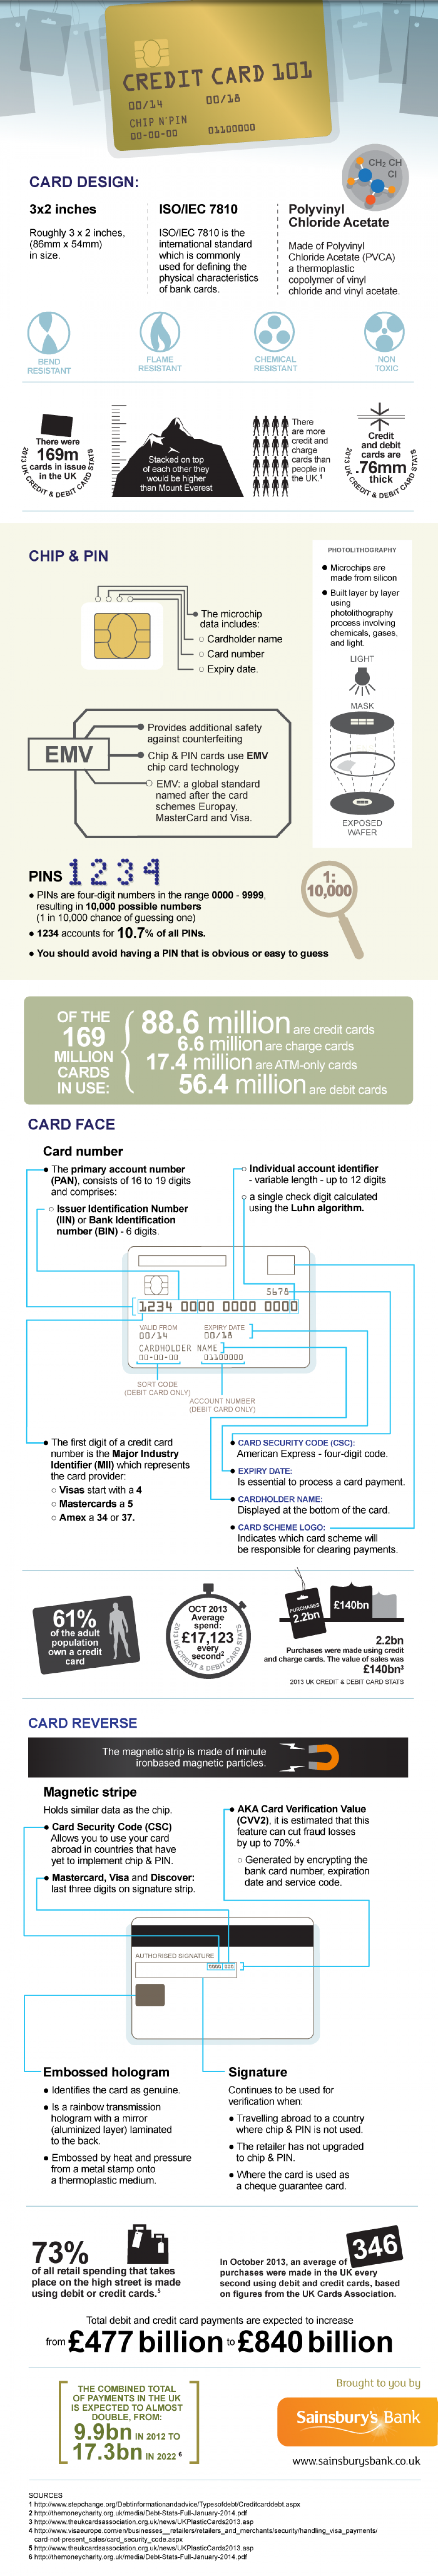 Credit Card 101 Infographic